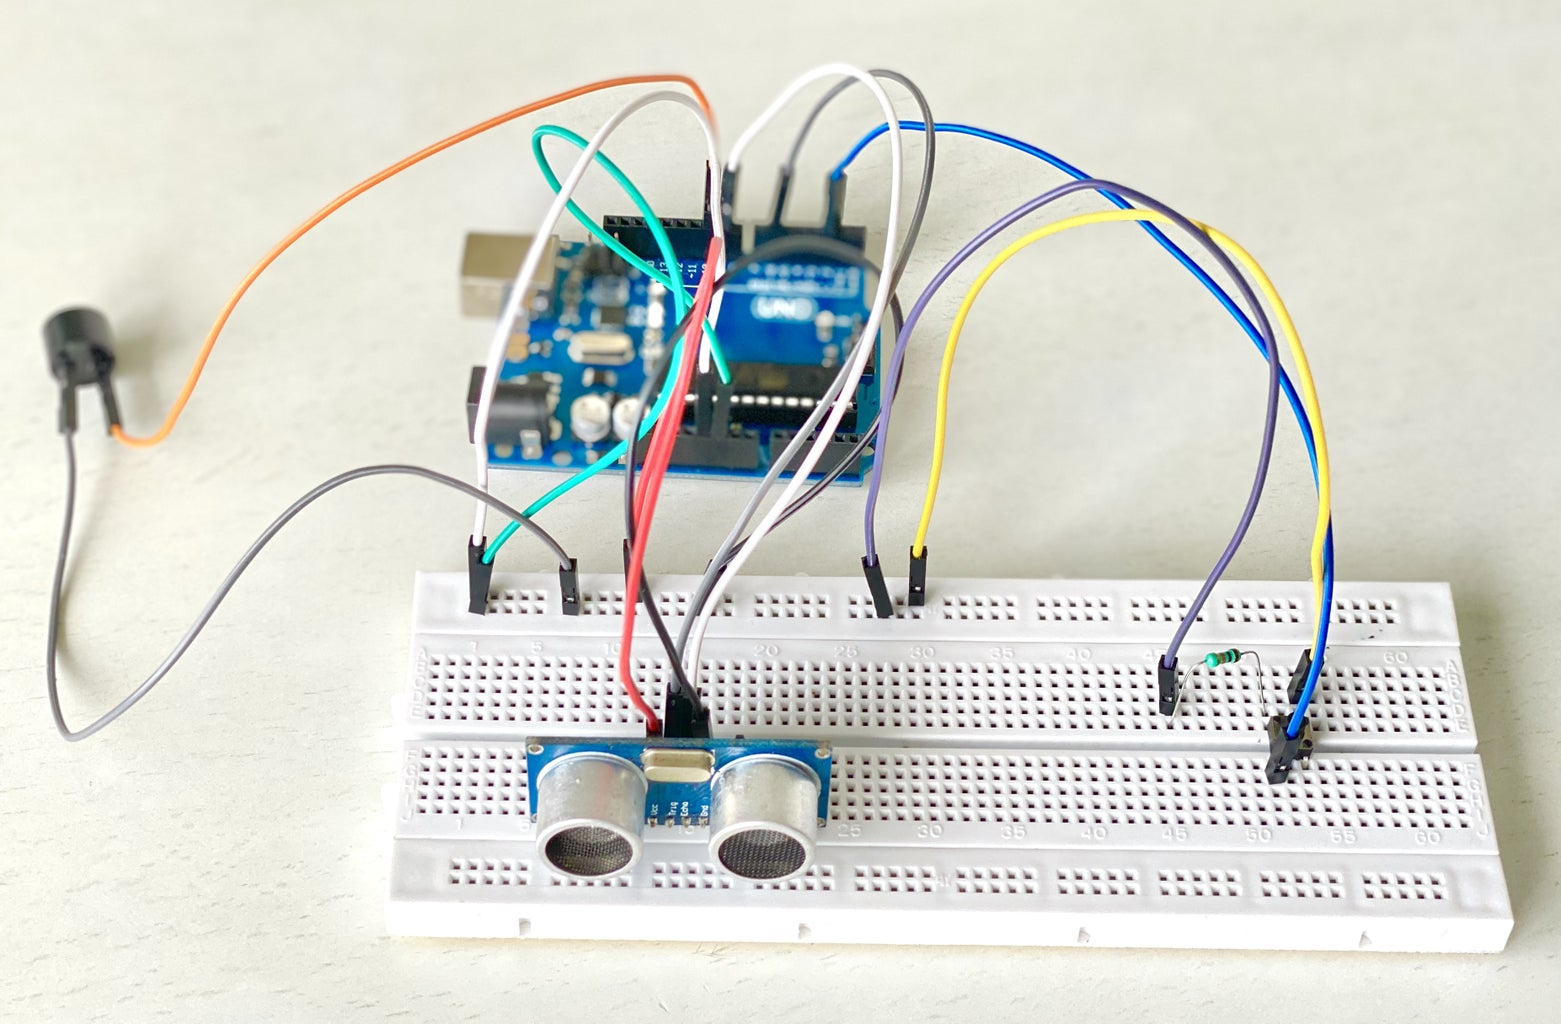 Building the Project on a Breadboard